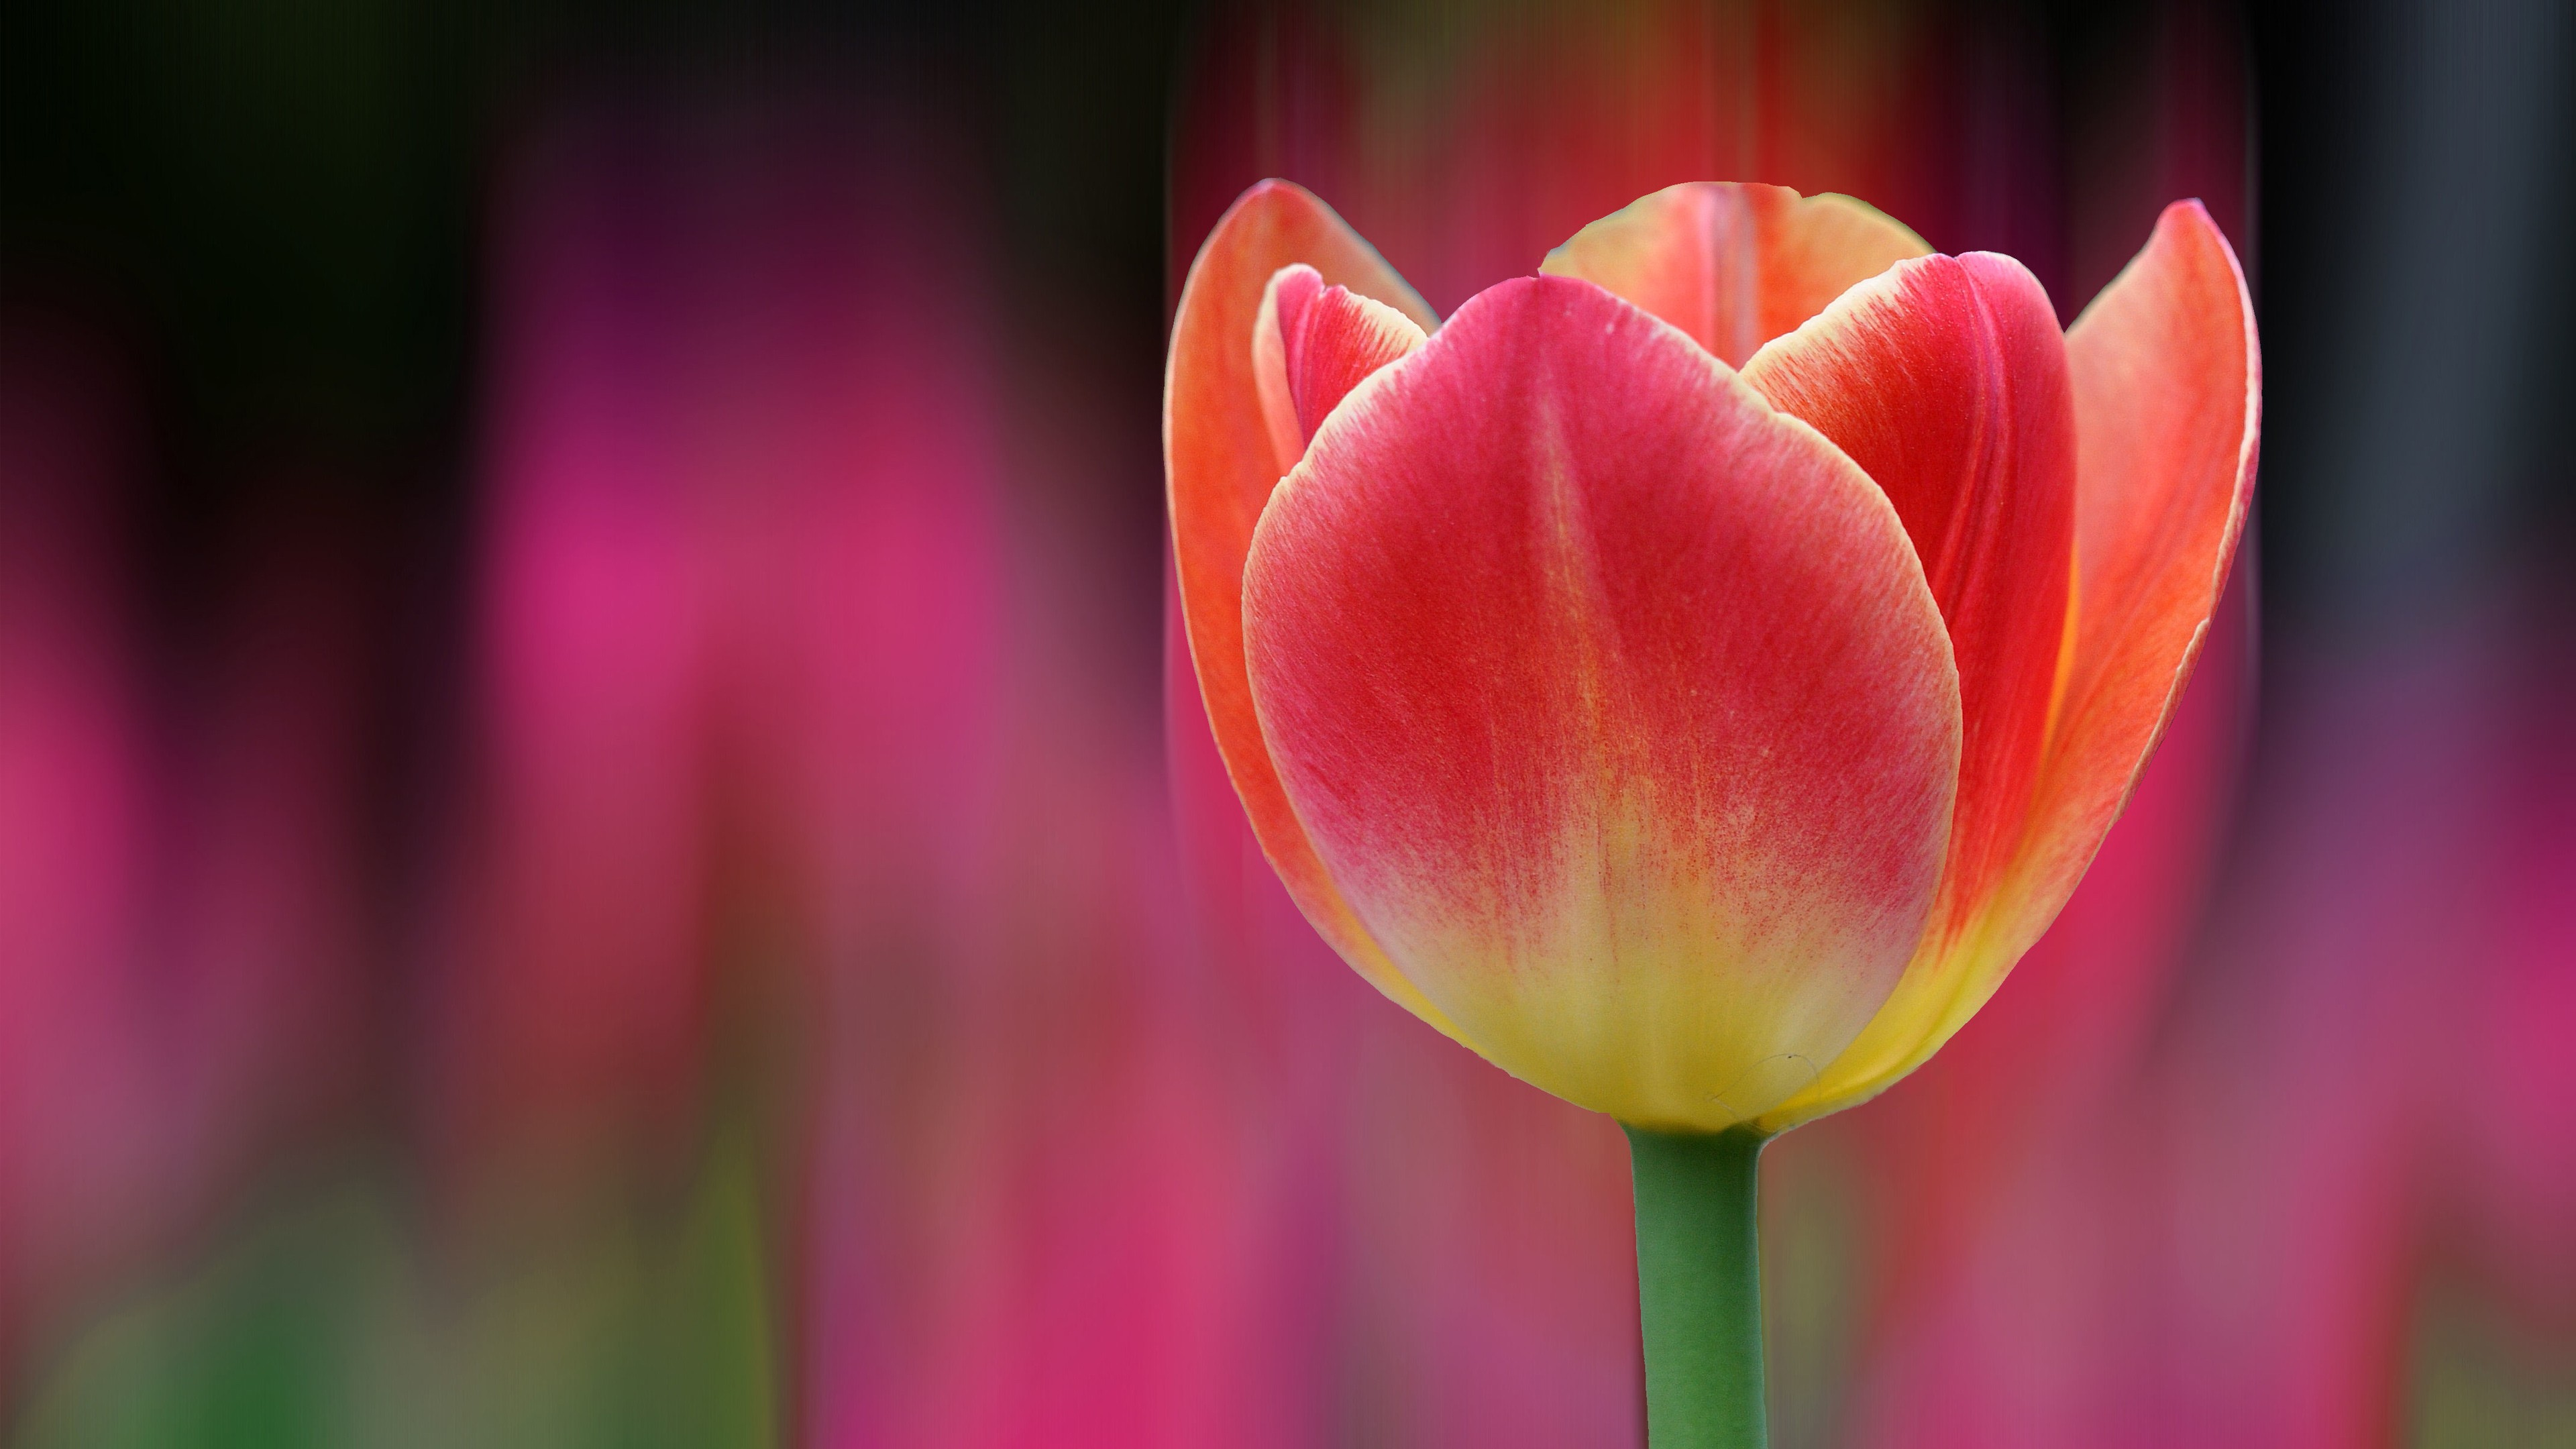 tulip wallpaper 4k background